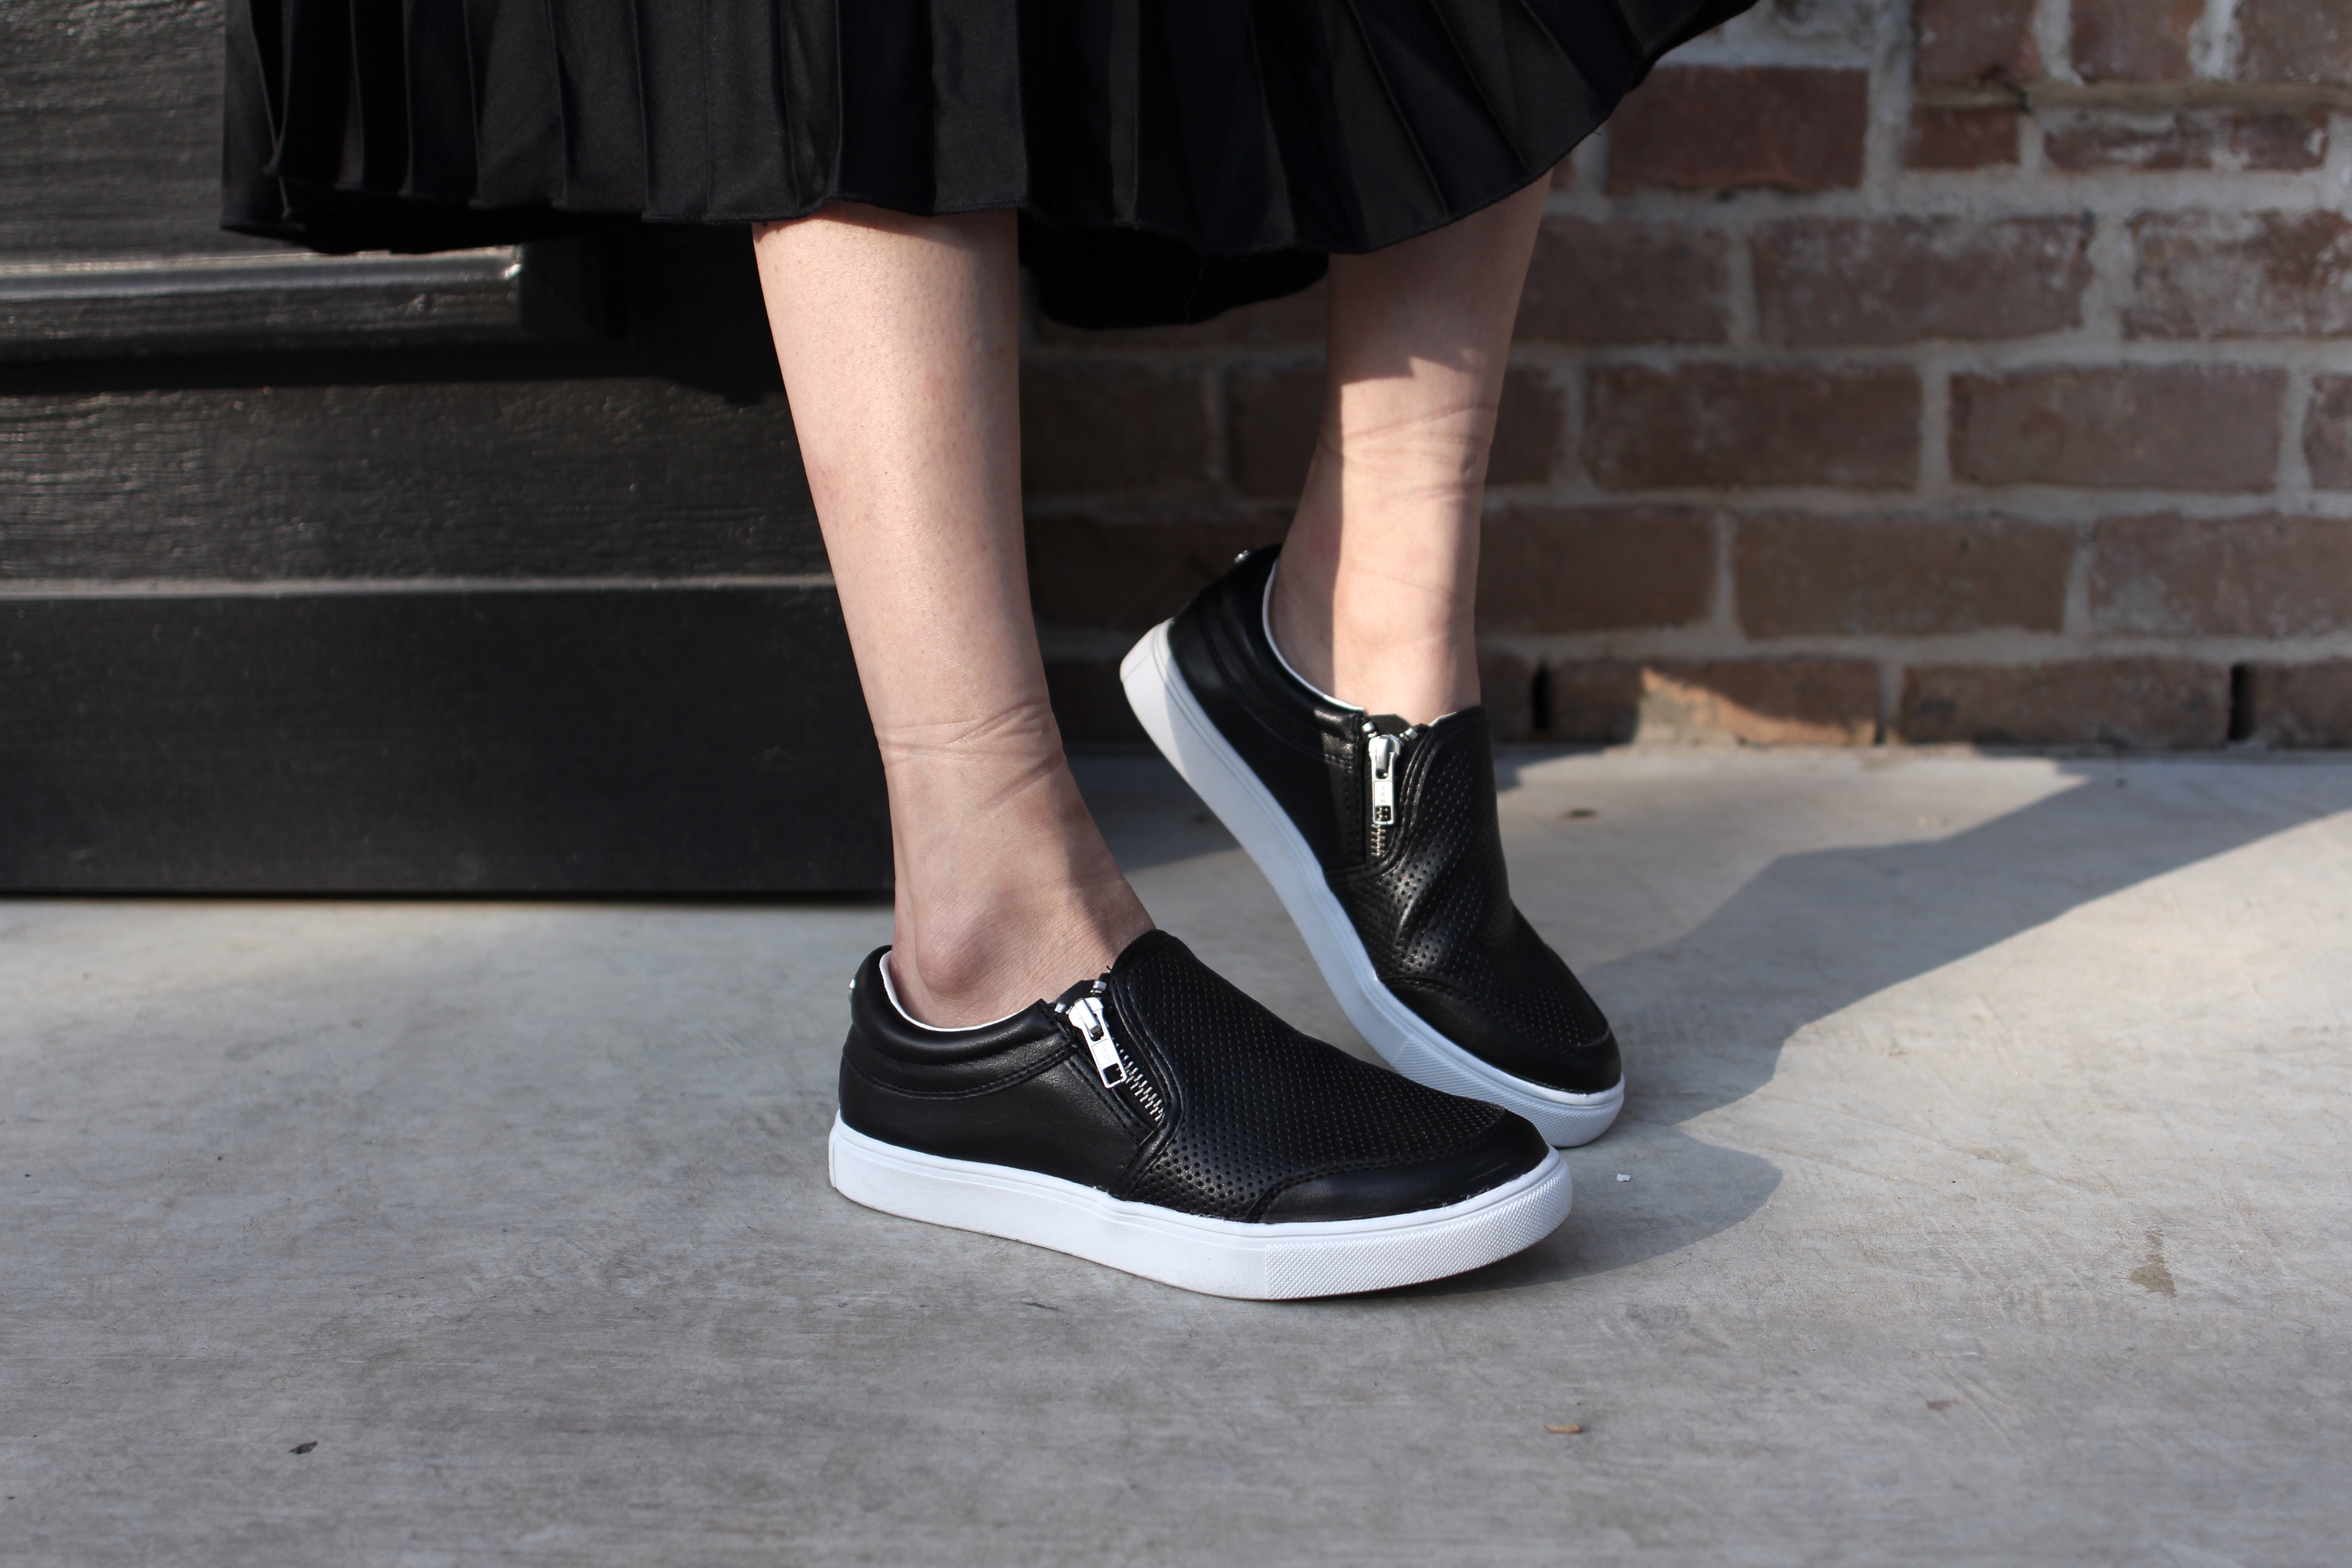 Payless slip-ons to complete the off-duty look